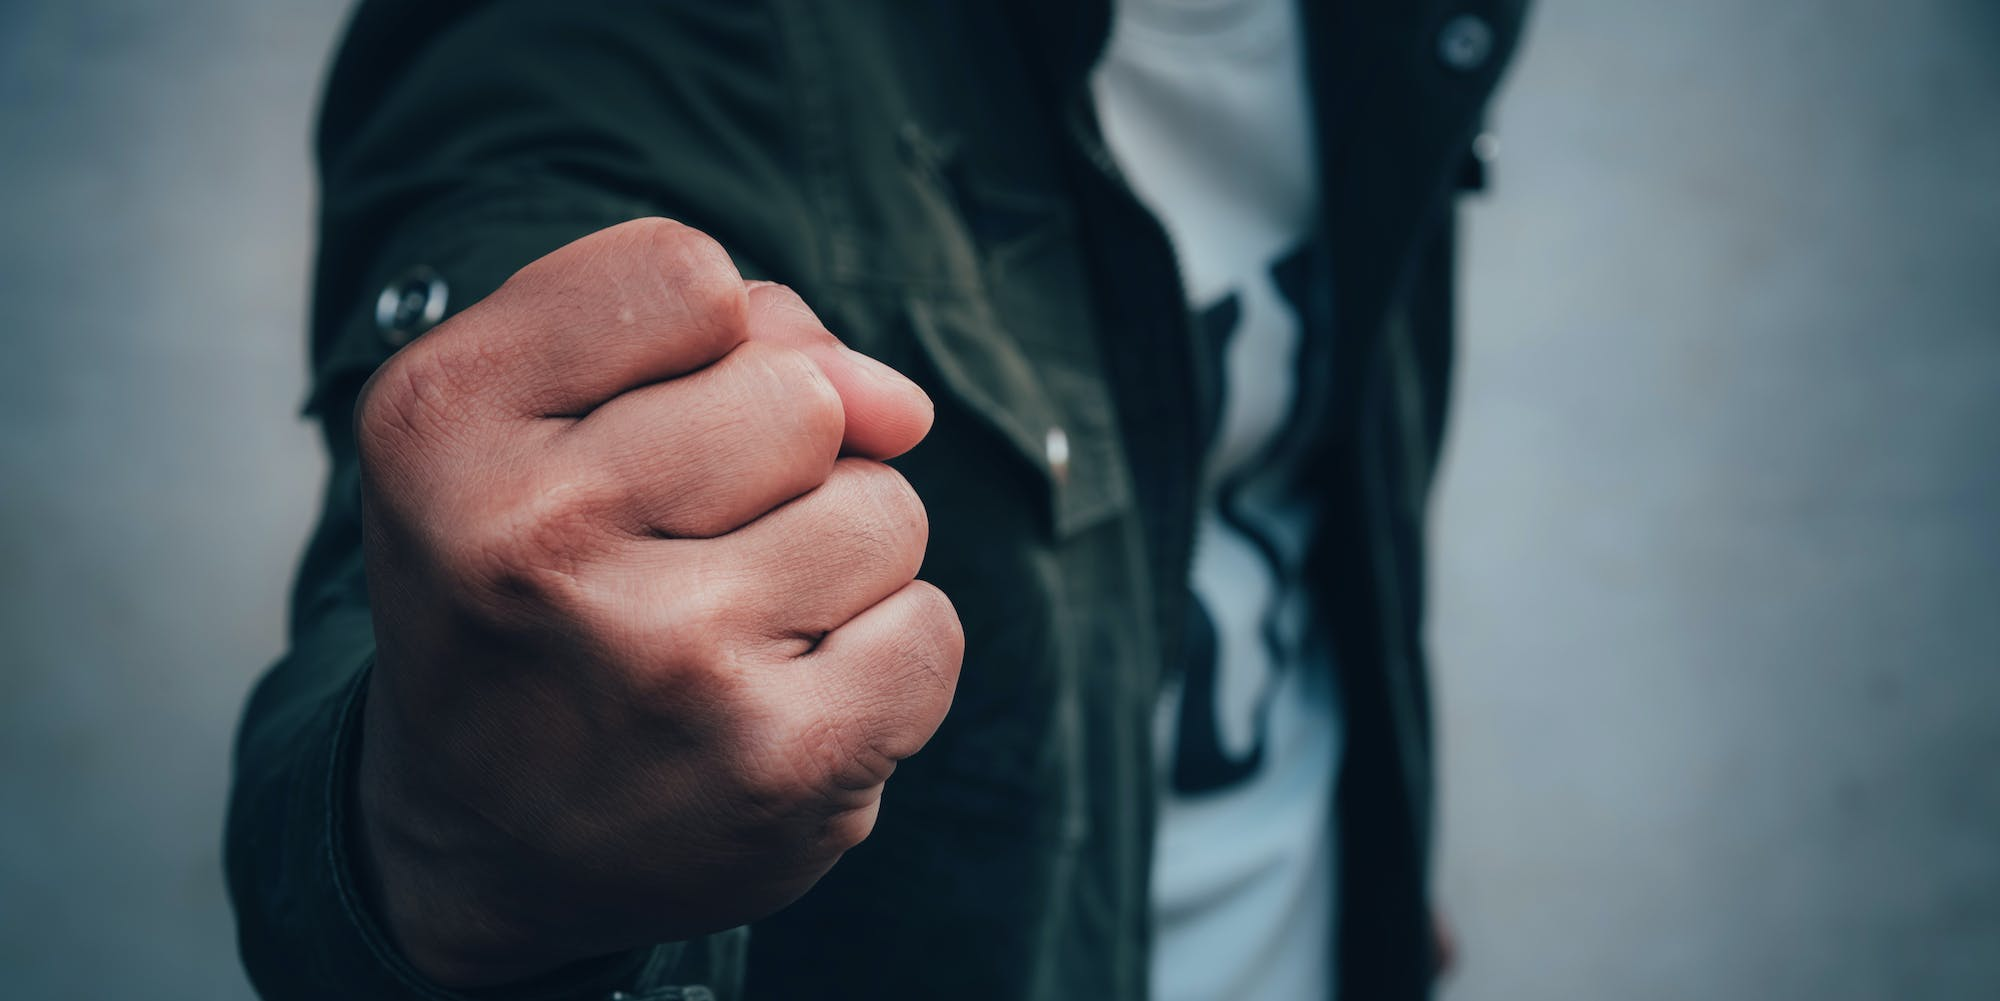 fist clenched